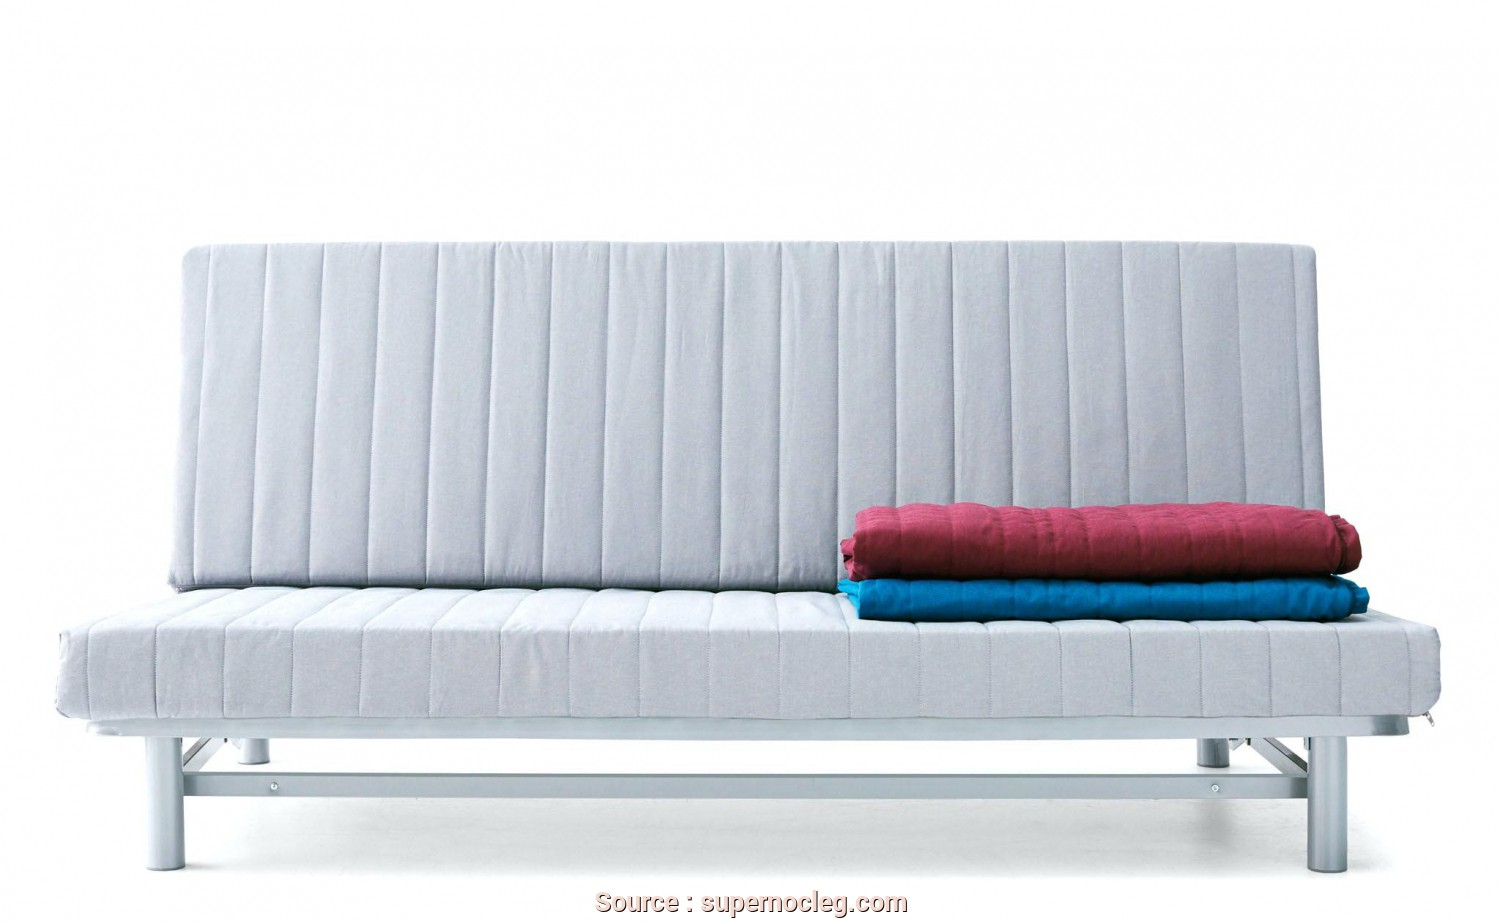 Beddinge Ikea Lovas, Locale Best Of Ikea Sofa, Lovas Review Cienporcientocardenal